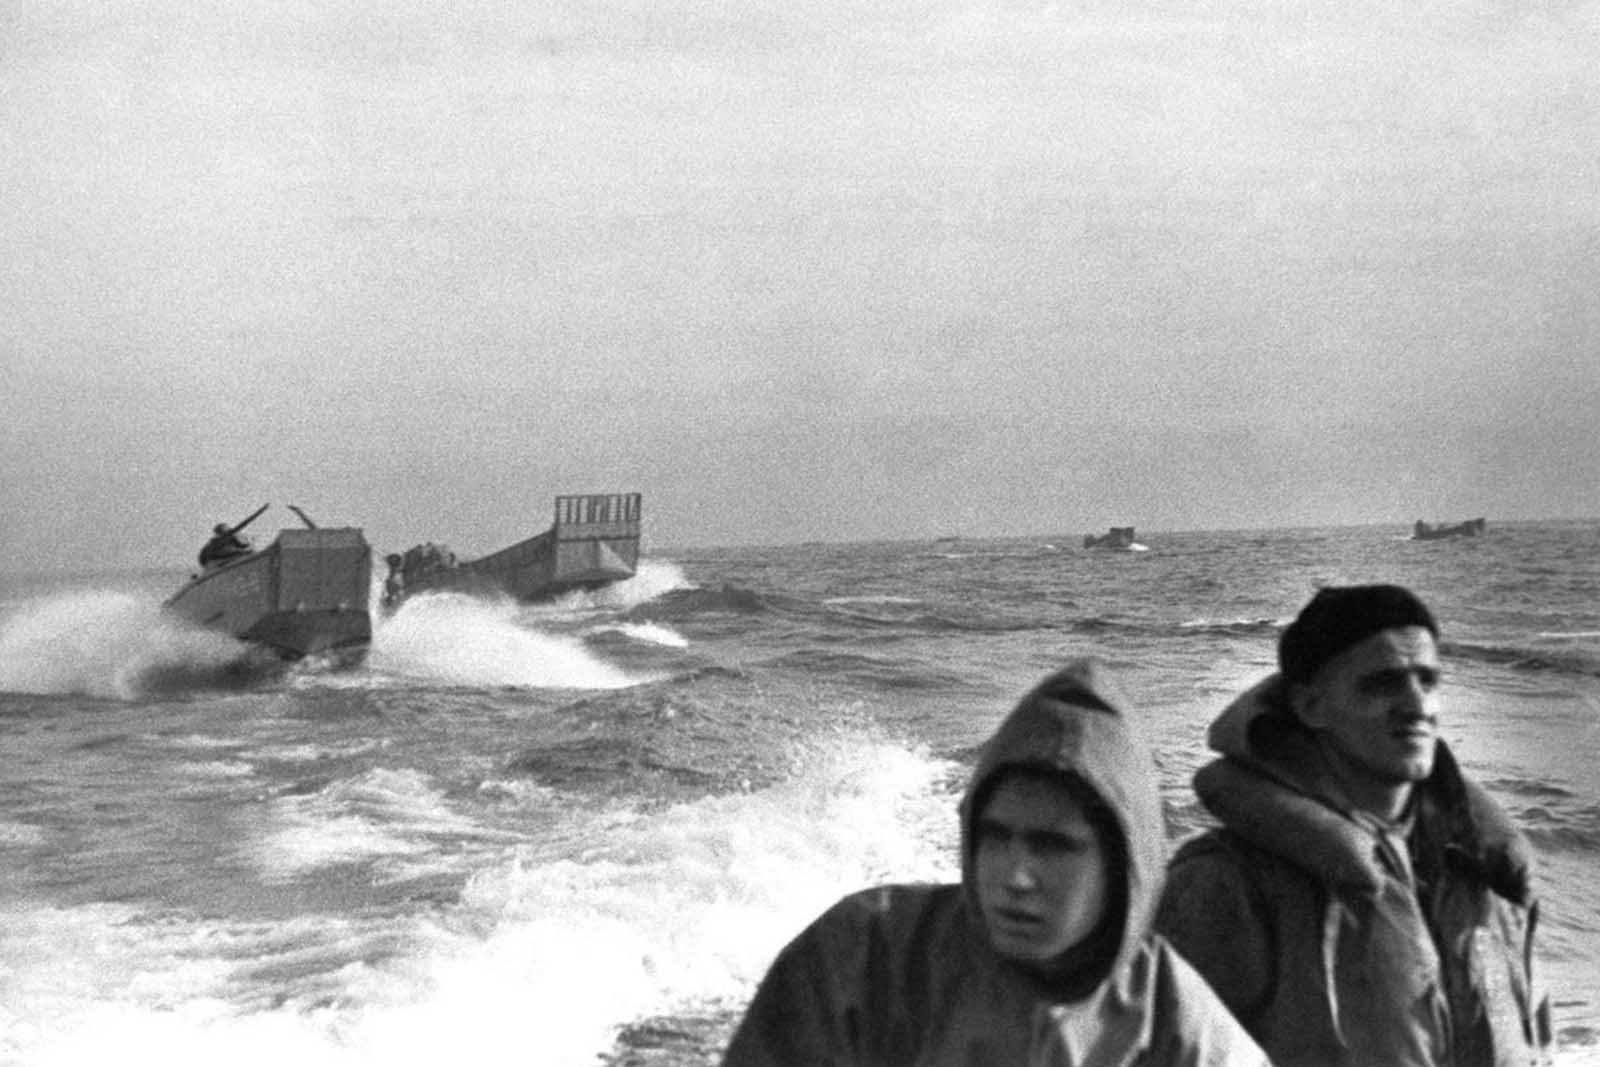 U.S. landing barges speed shoreward off Fedala, French Morocco during landing operations in early November, 1942. Fedala is about 15 miles north of Casablanca, French Moroccan city.